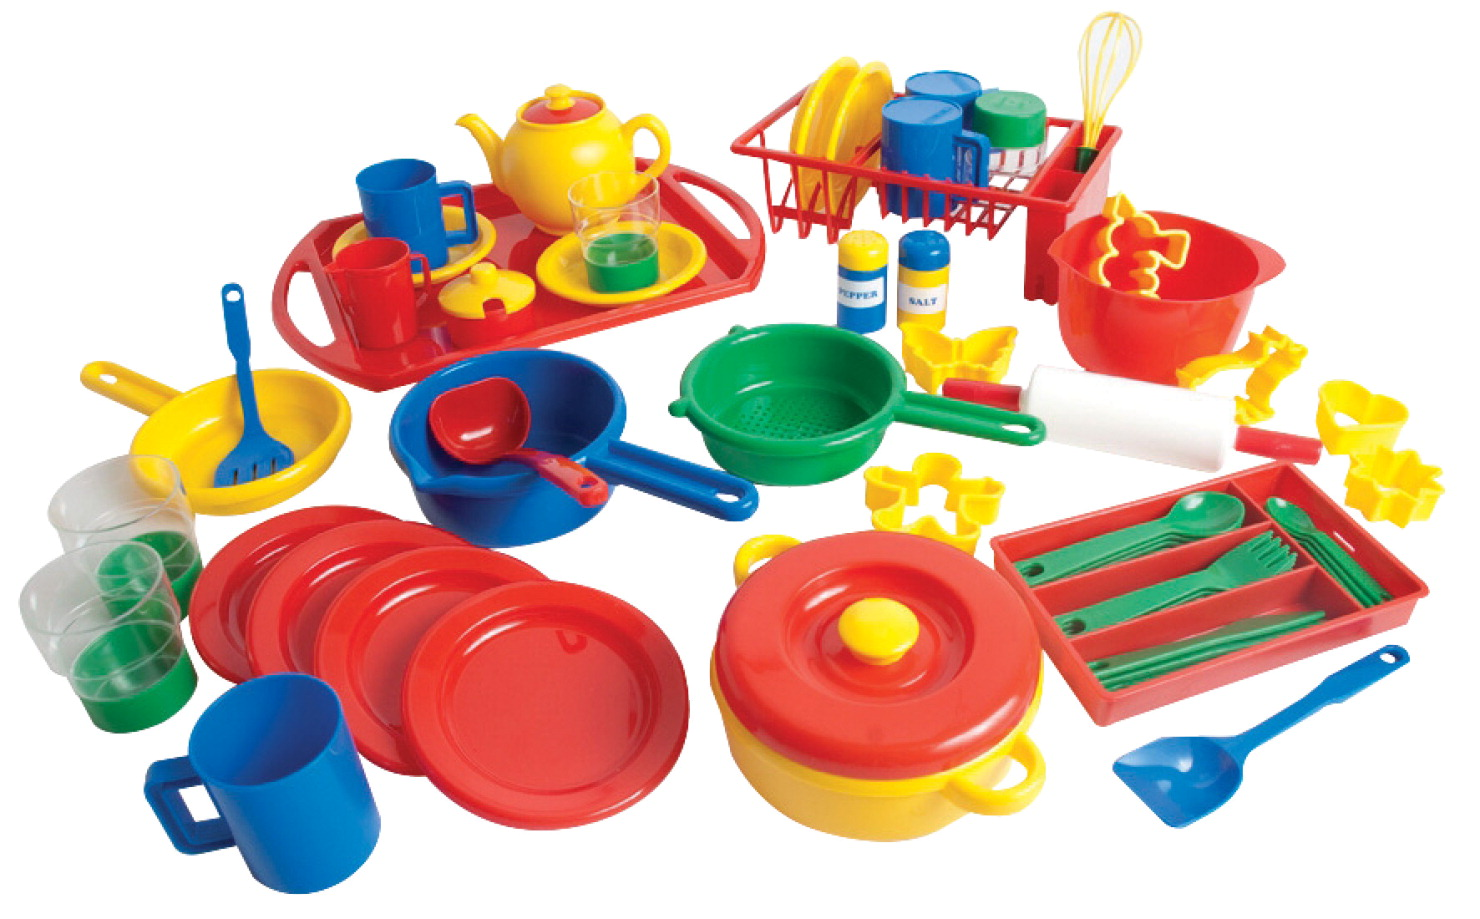 School Smart Play Kitchen Dishes Pack, 4 Settings, Assorted Colors, 55 Pieces